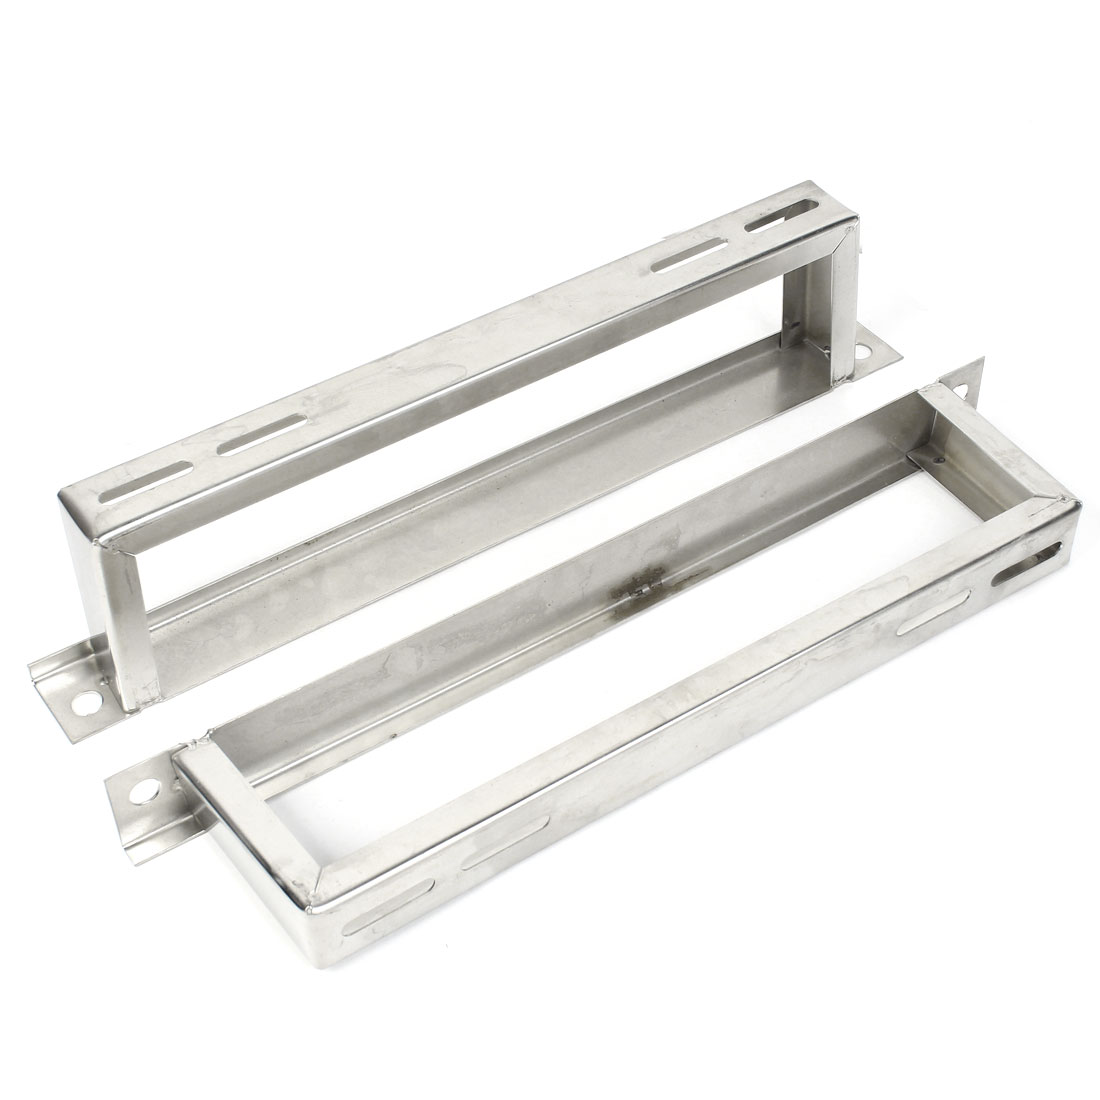 Air Conditioner Rectangle Stainless Steel Hollow Out Bracket Support Stand 2 Pcs